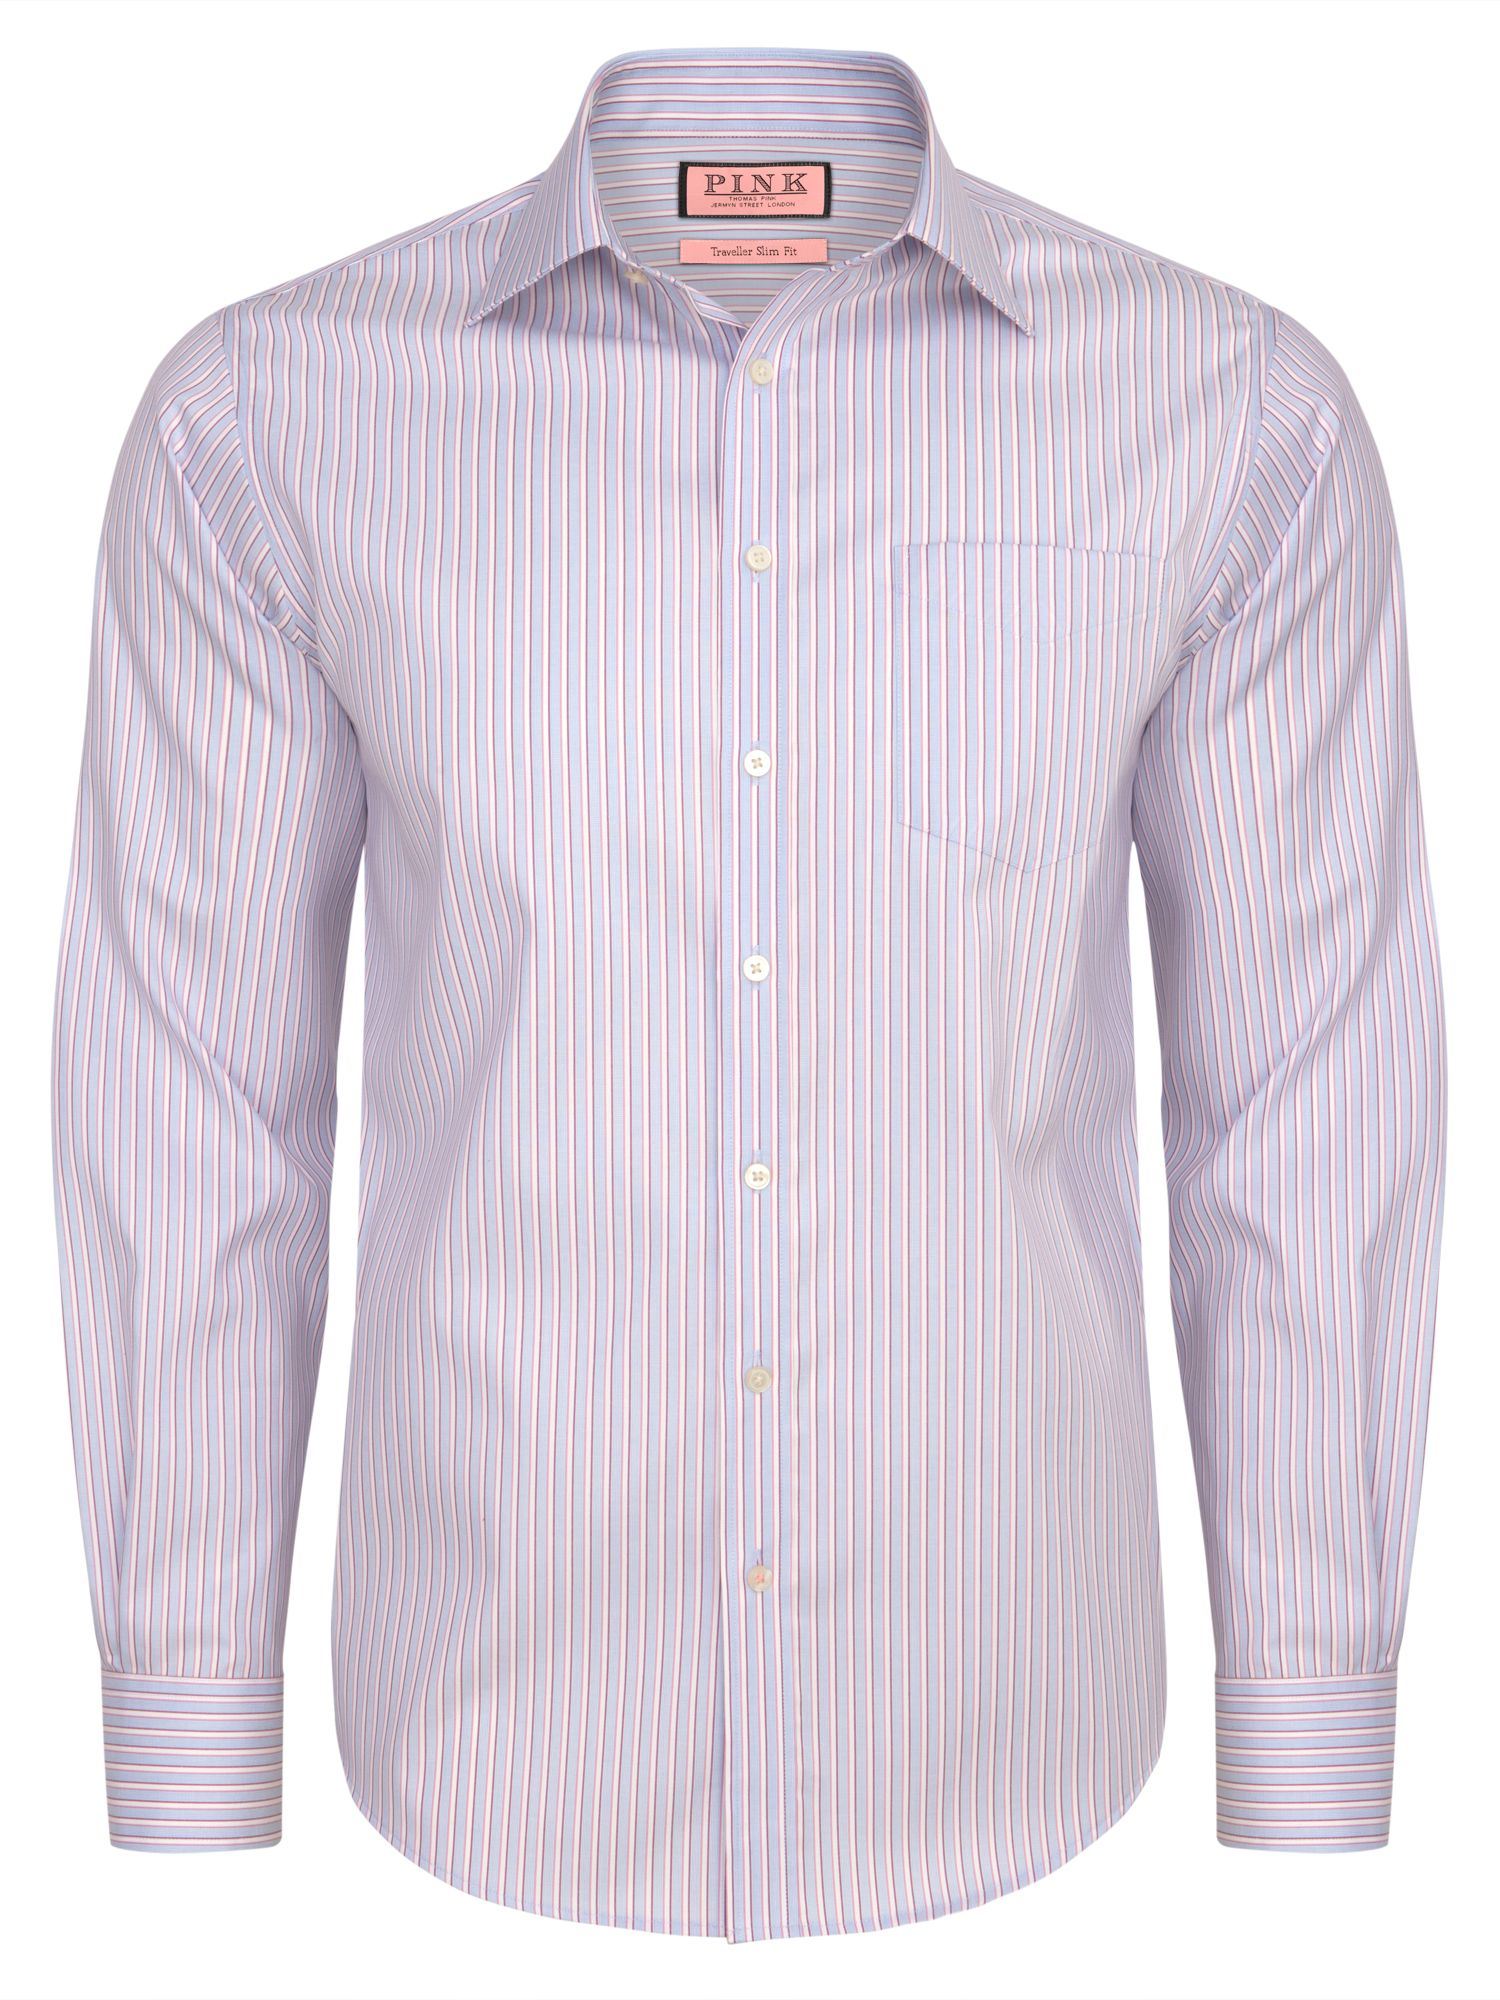 Dowling stripe long sleeve shirt